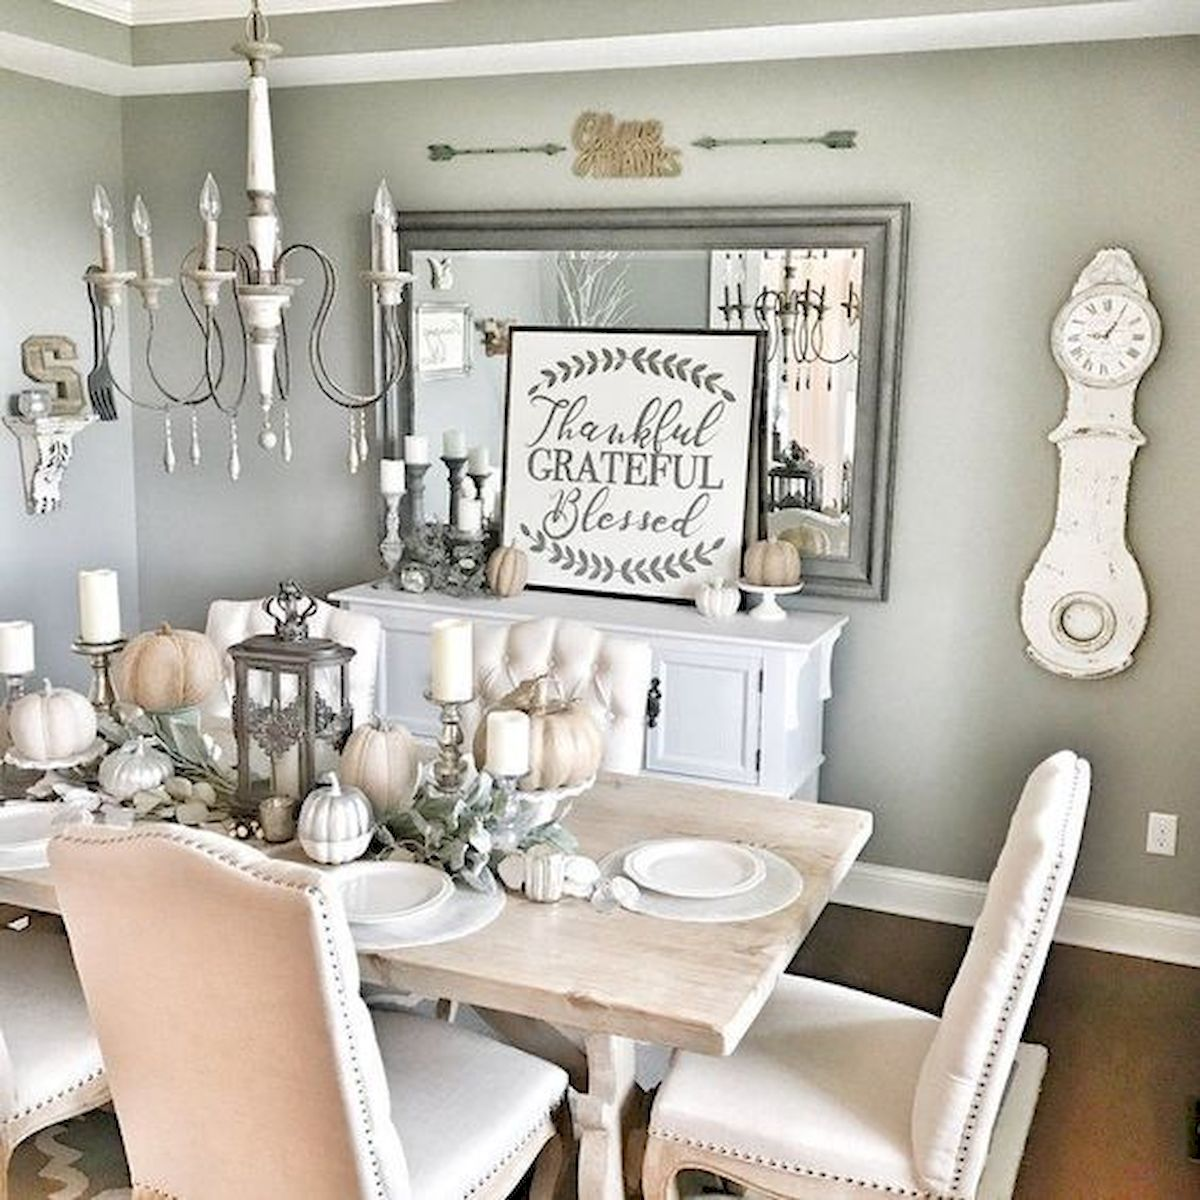 50 Awesome Wall Decoration Ideas for Dinning Room (45)